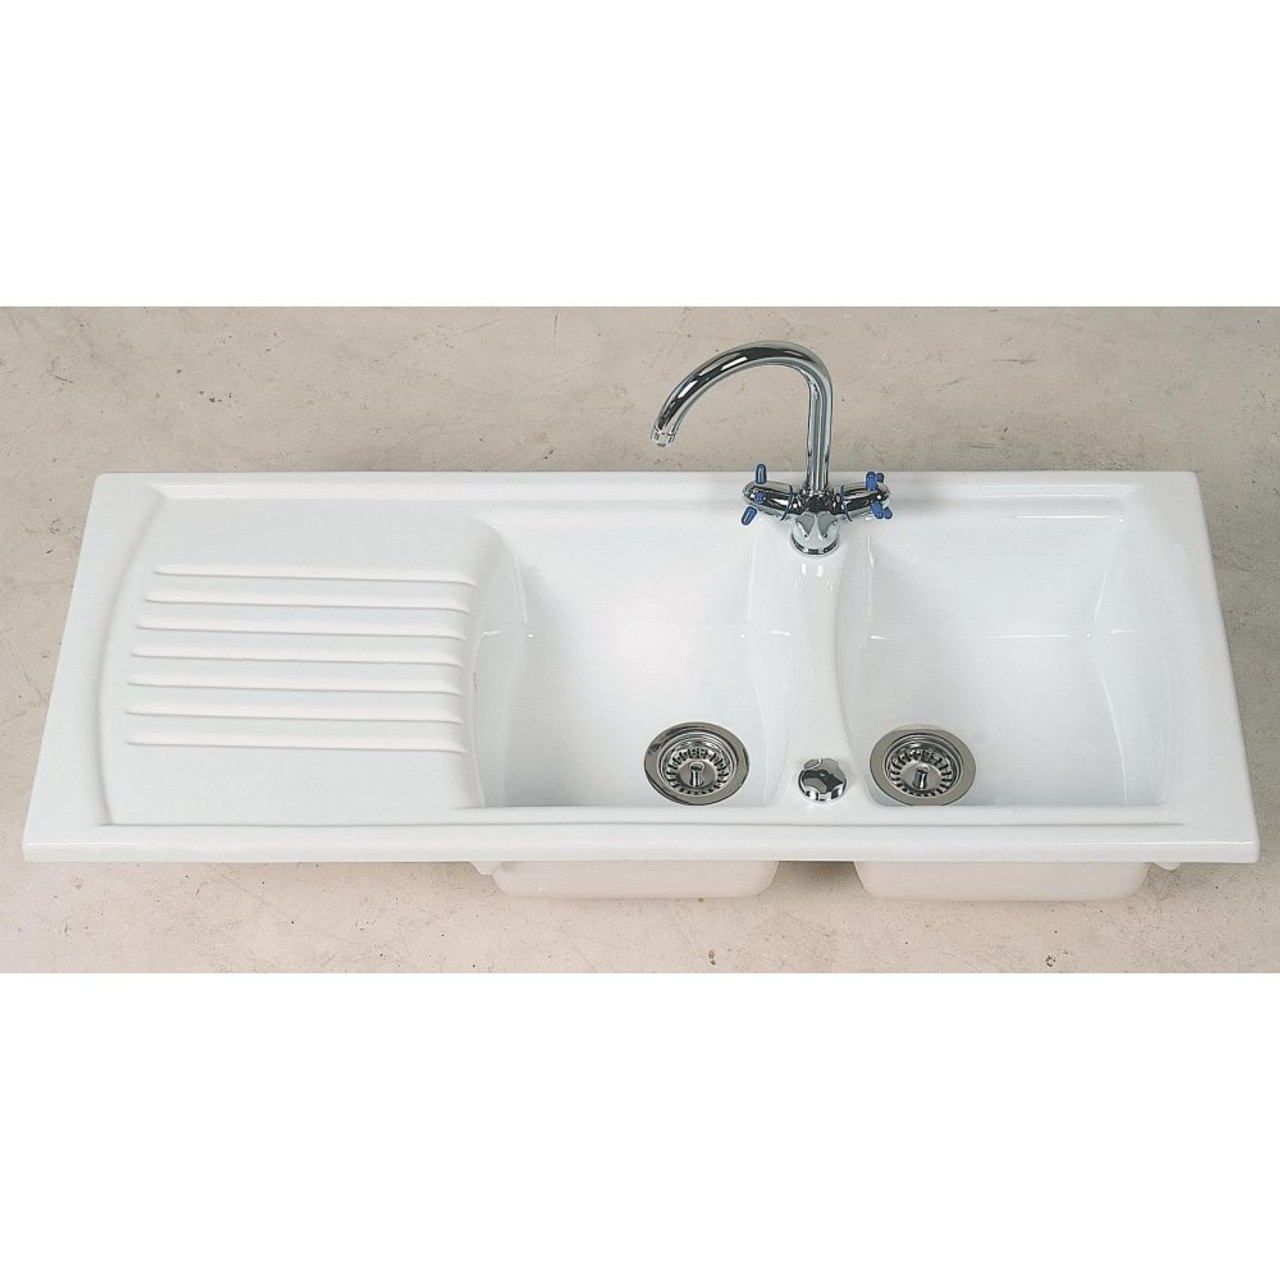 ceramic kitchen sink with drainer denby sonnet bowl sink sinks 8090